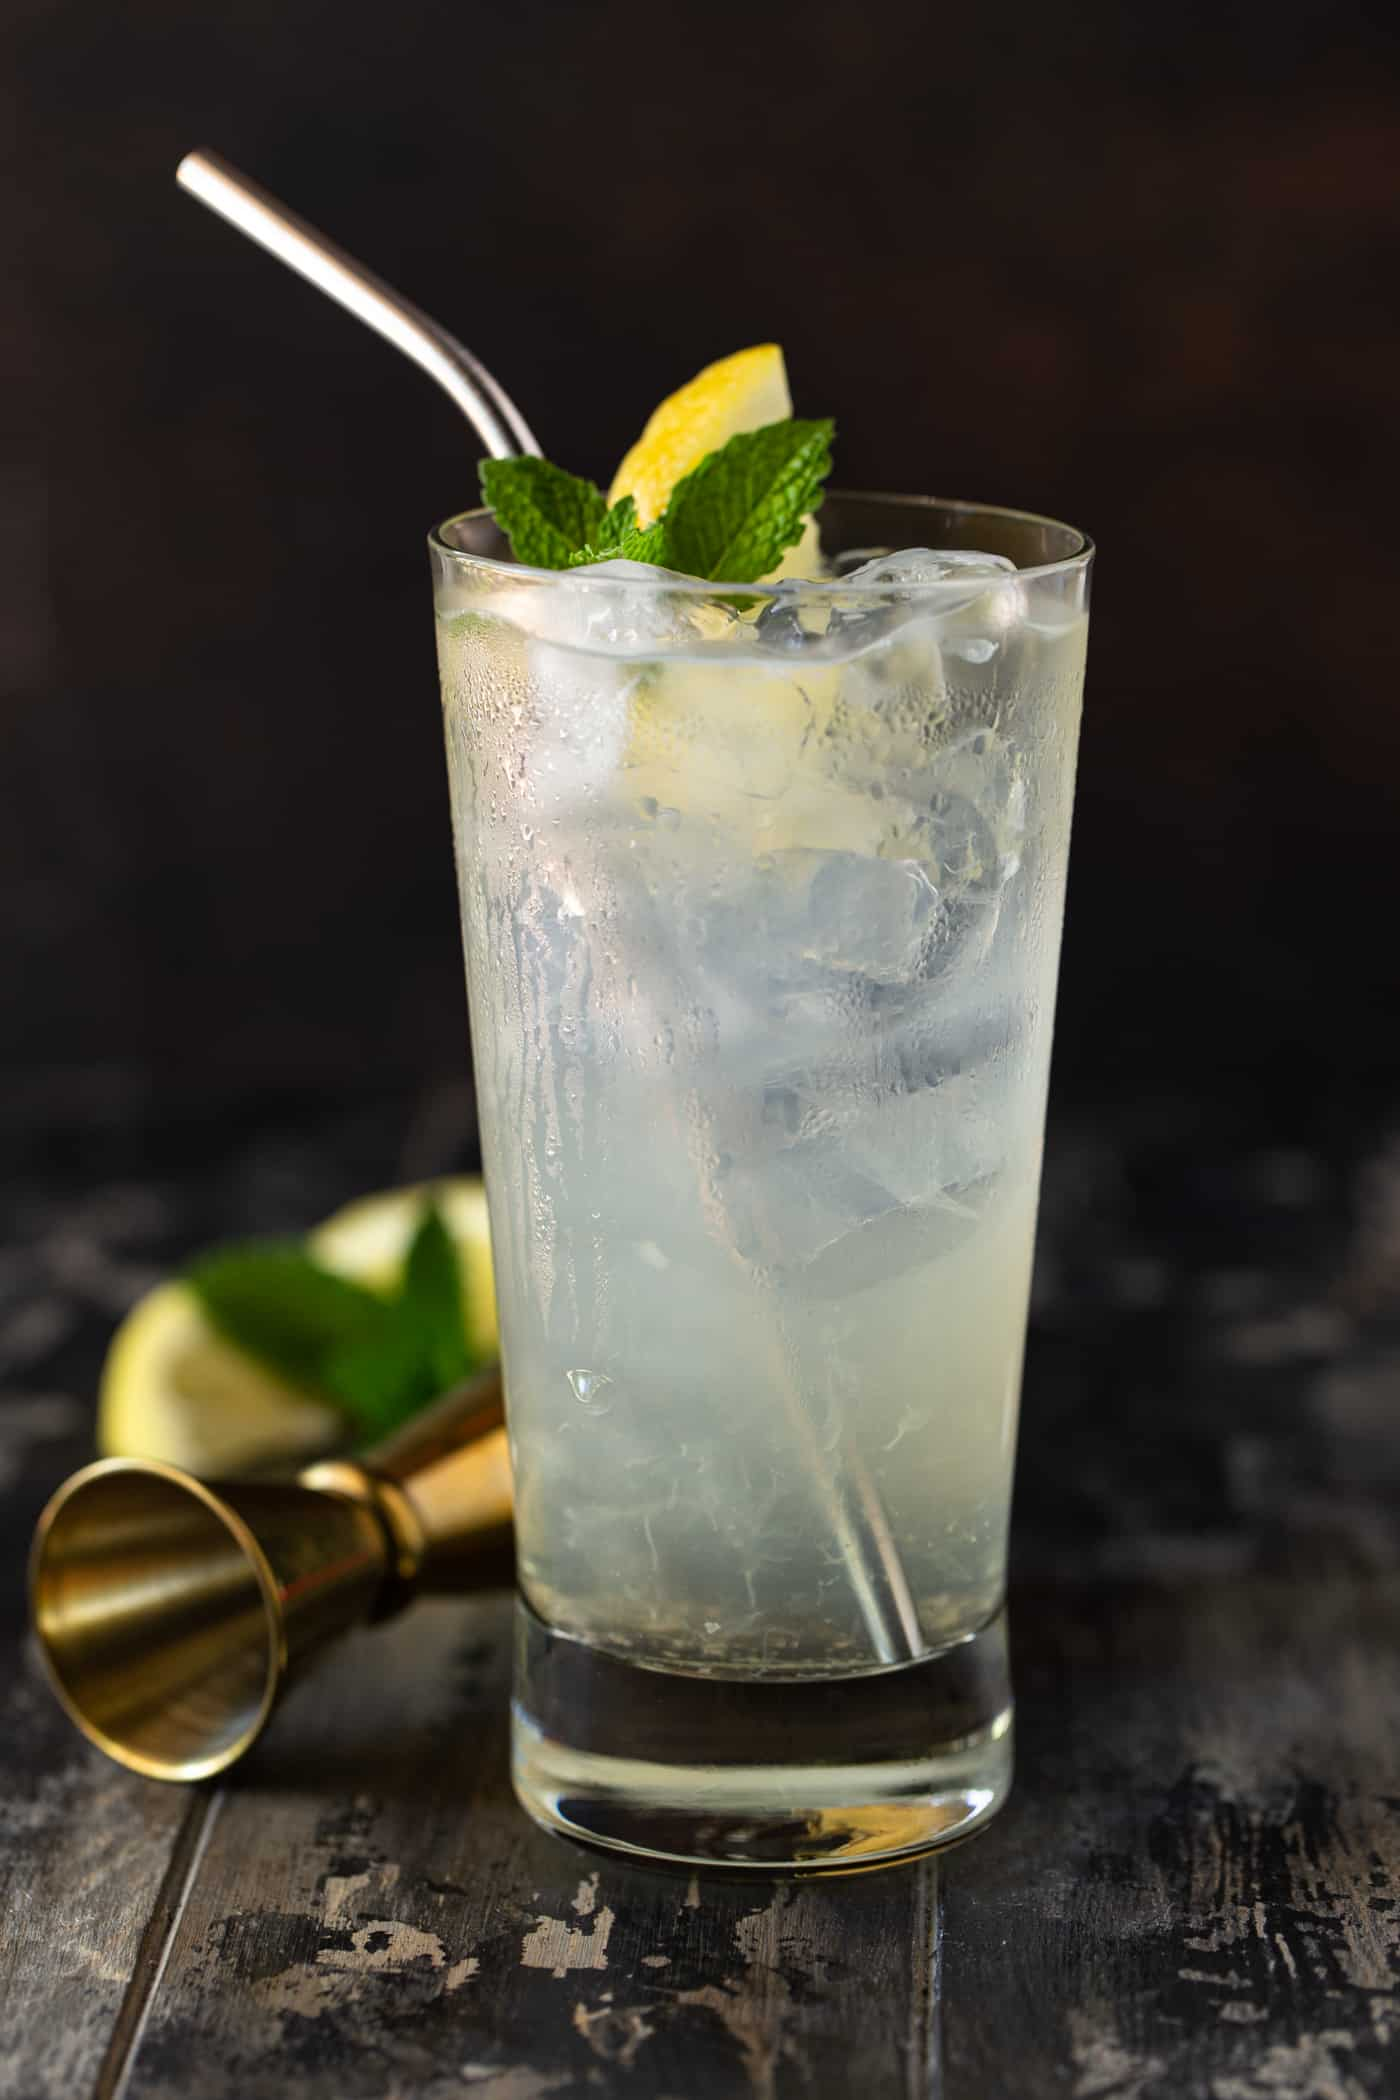 Single high ball filled with ice. lemonade and garnished with mint leaves and lemon wedges.